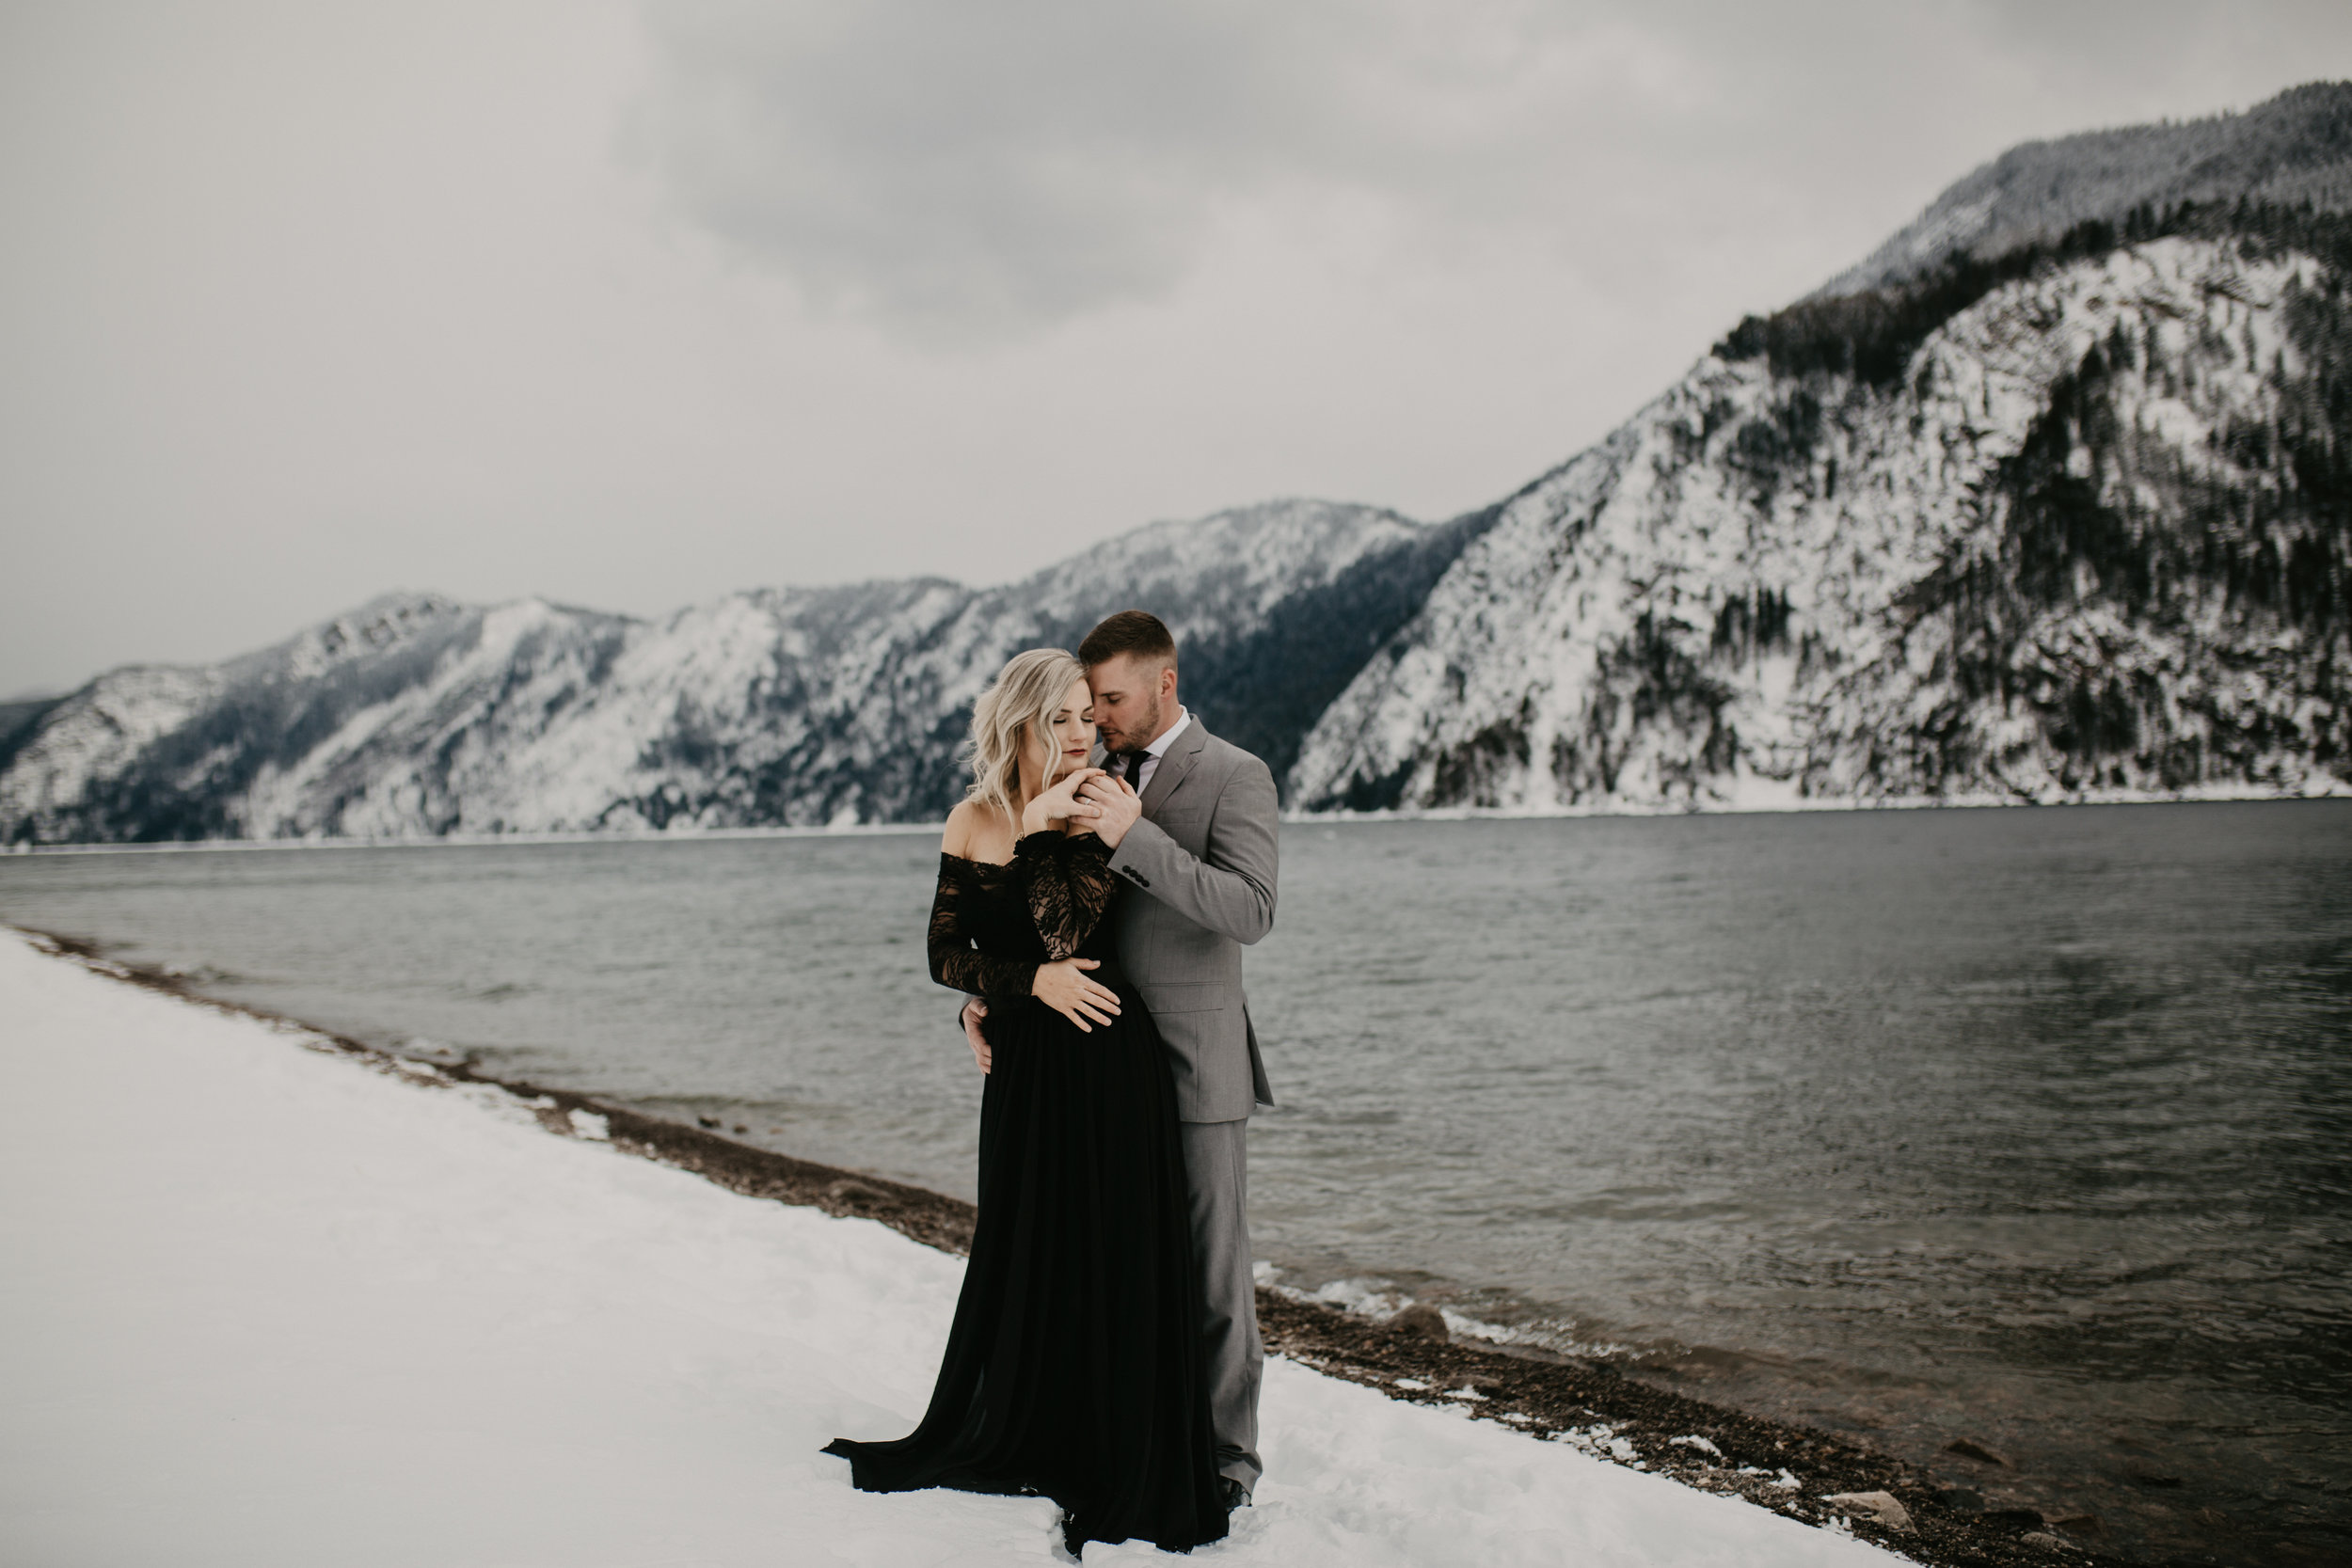 Destination wedding in Idaho on the shores of Lake Ponderay